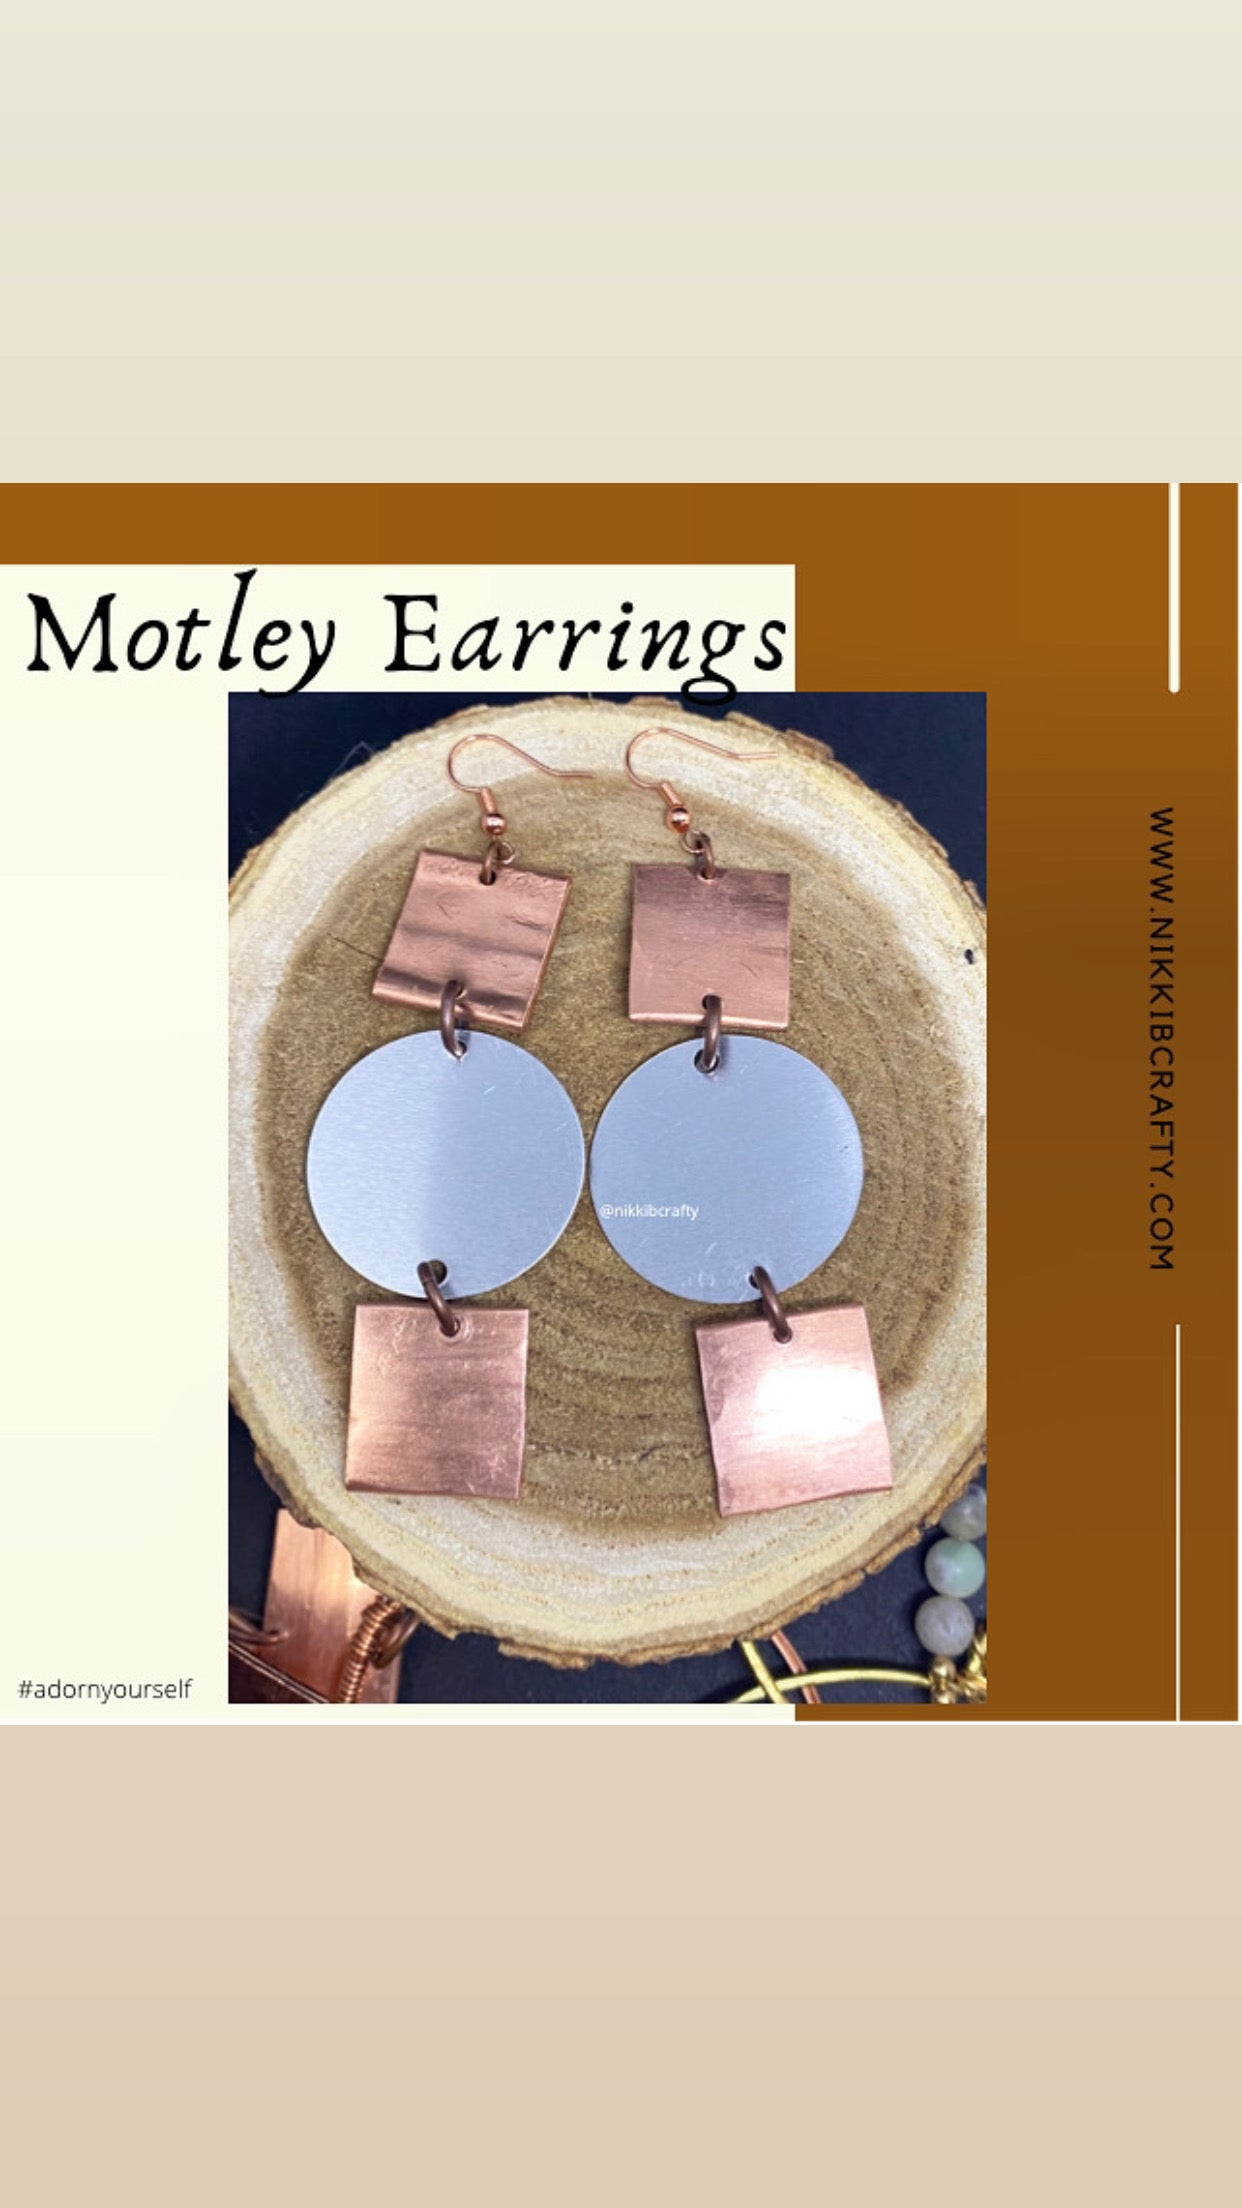 Image of Motley Earrings